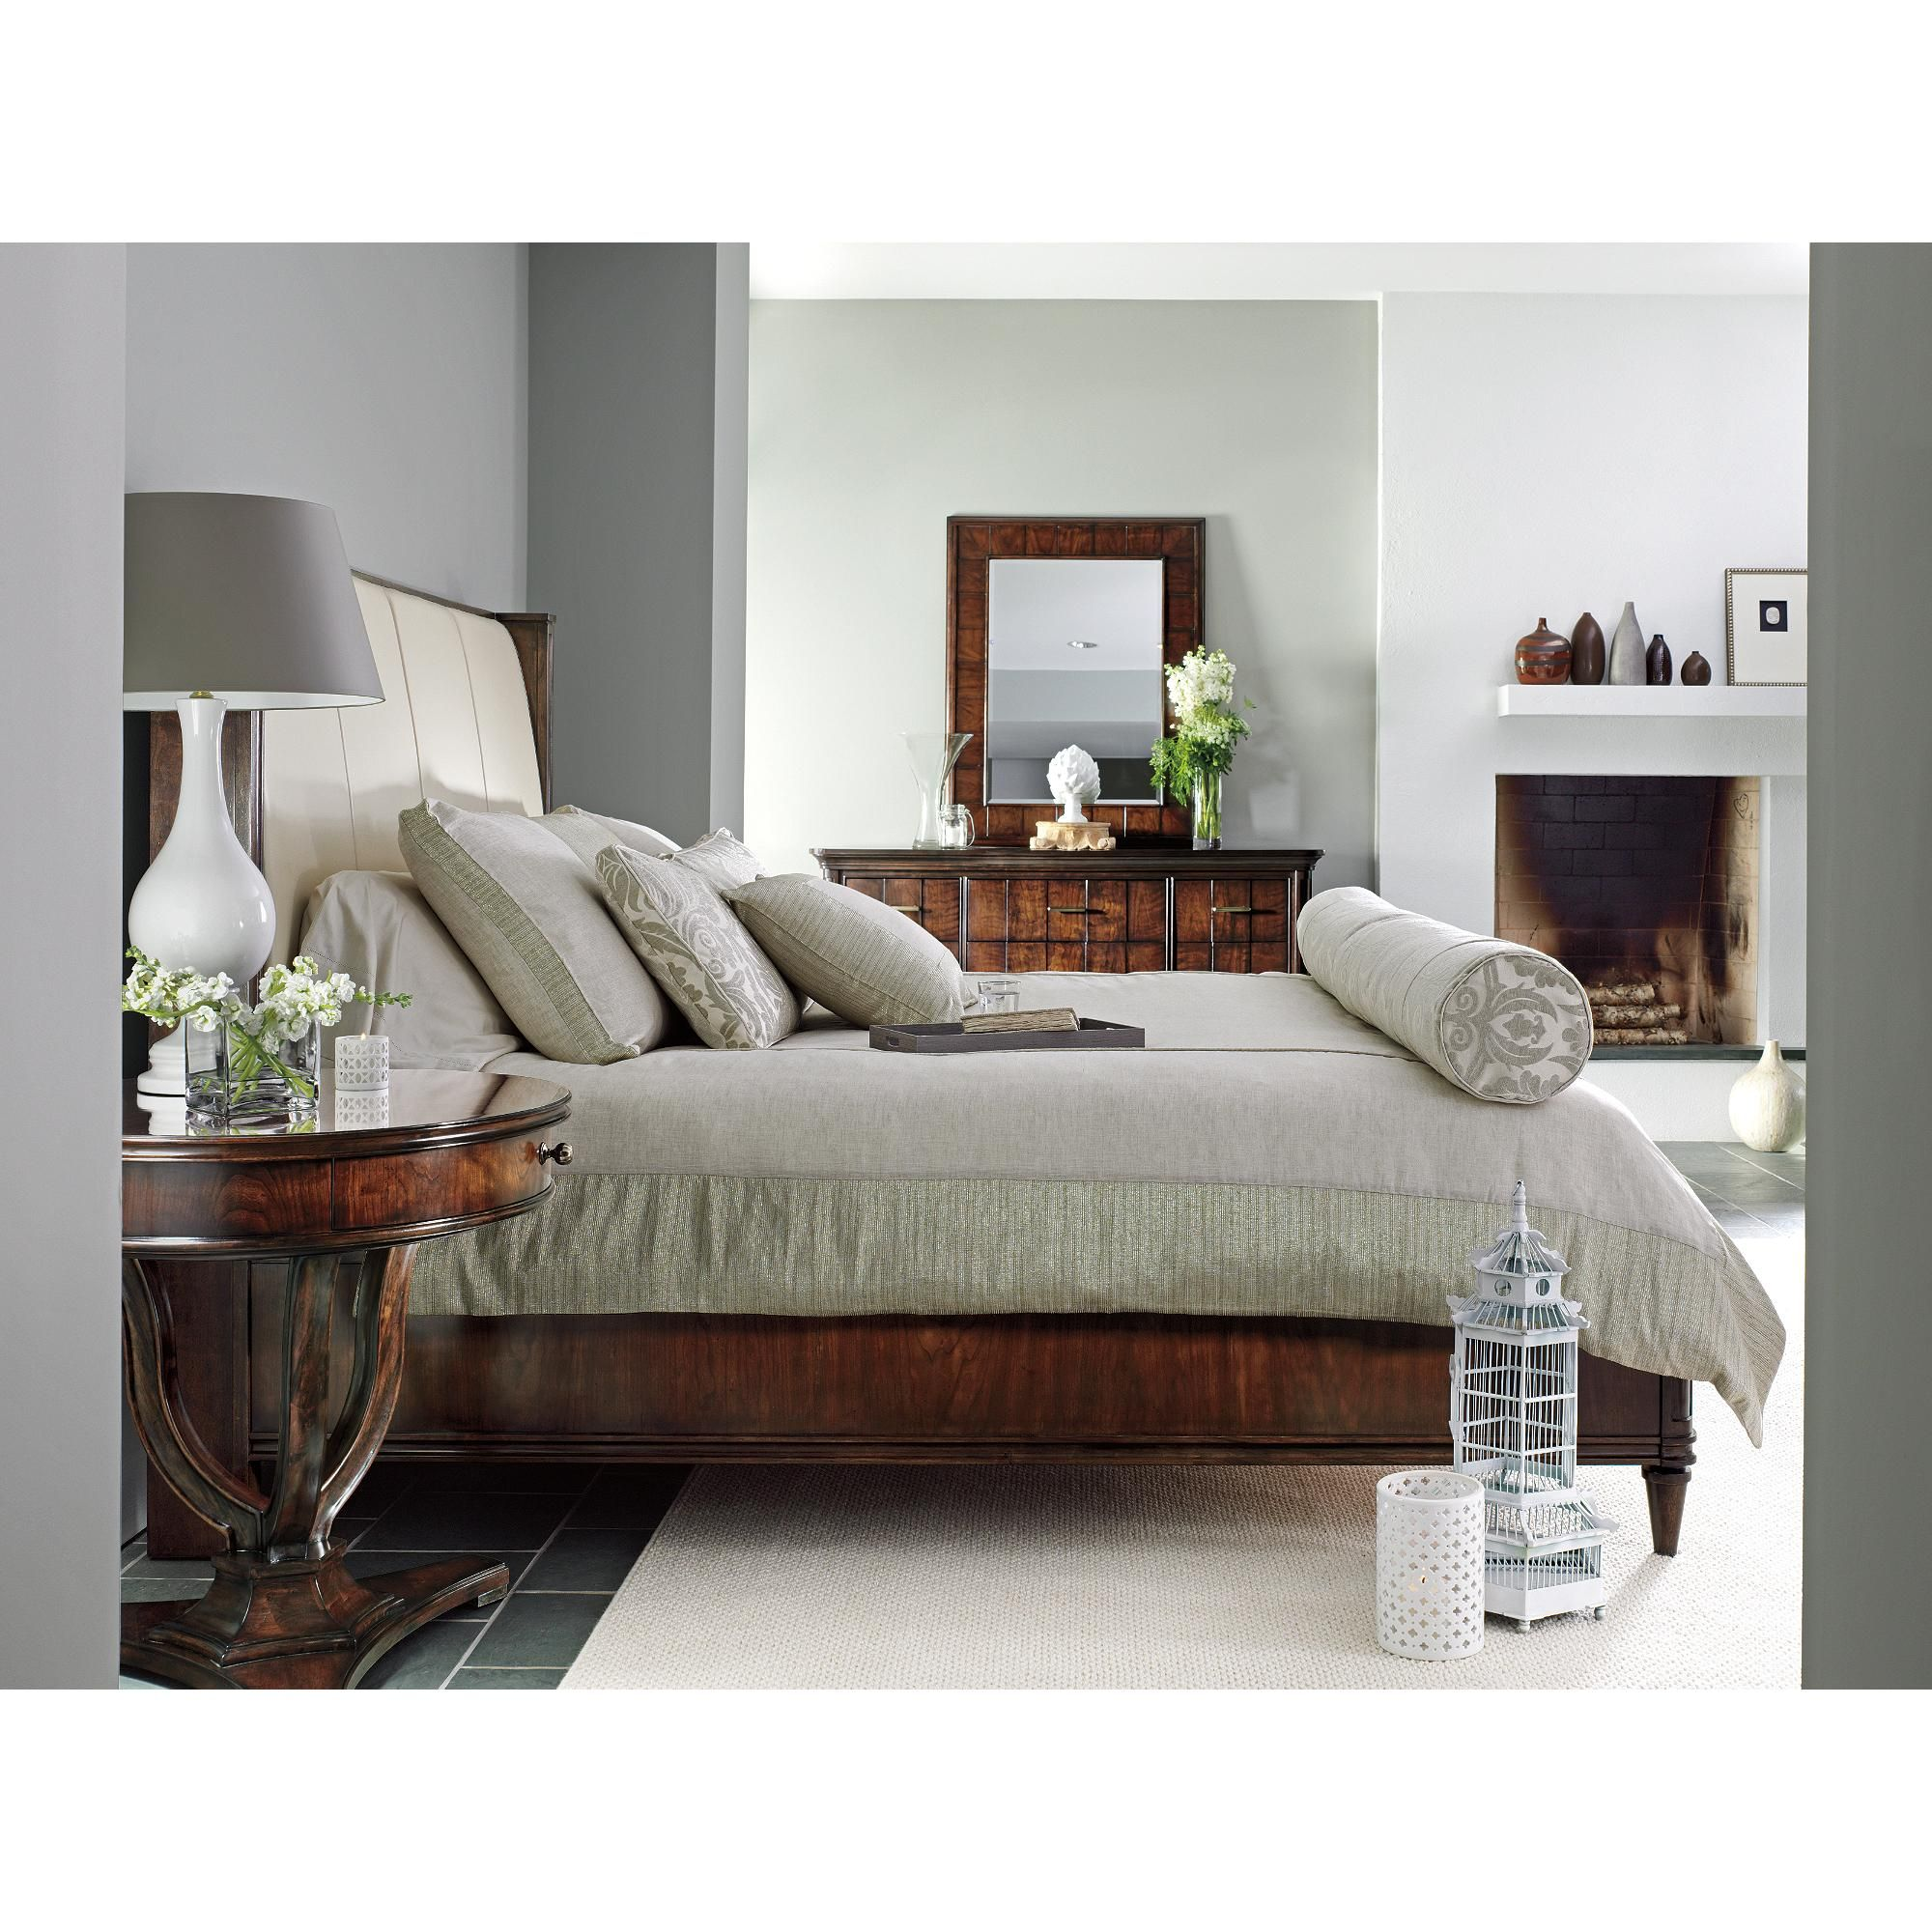 Master bedroom ideas For the Home Pinterest Stanley furniture